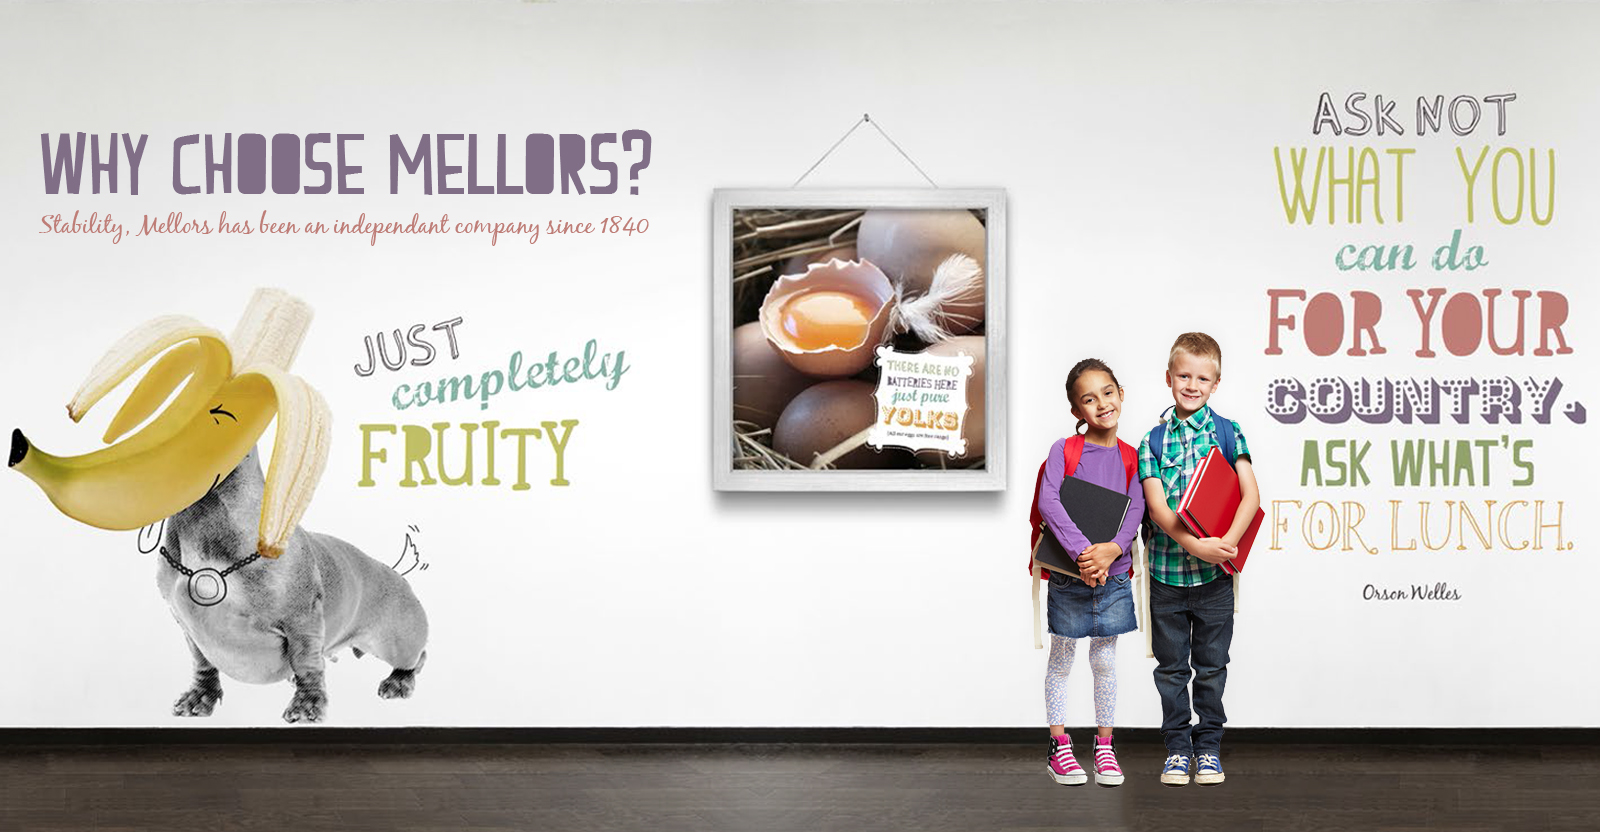 Why choose mellors